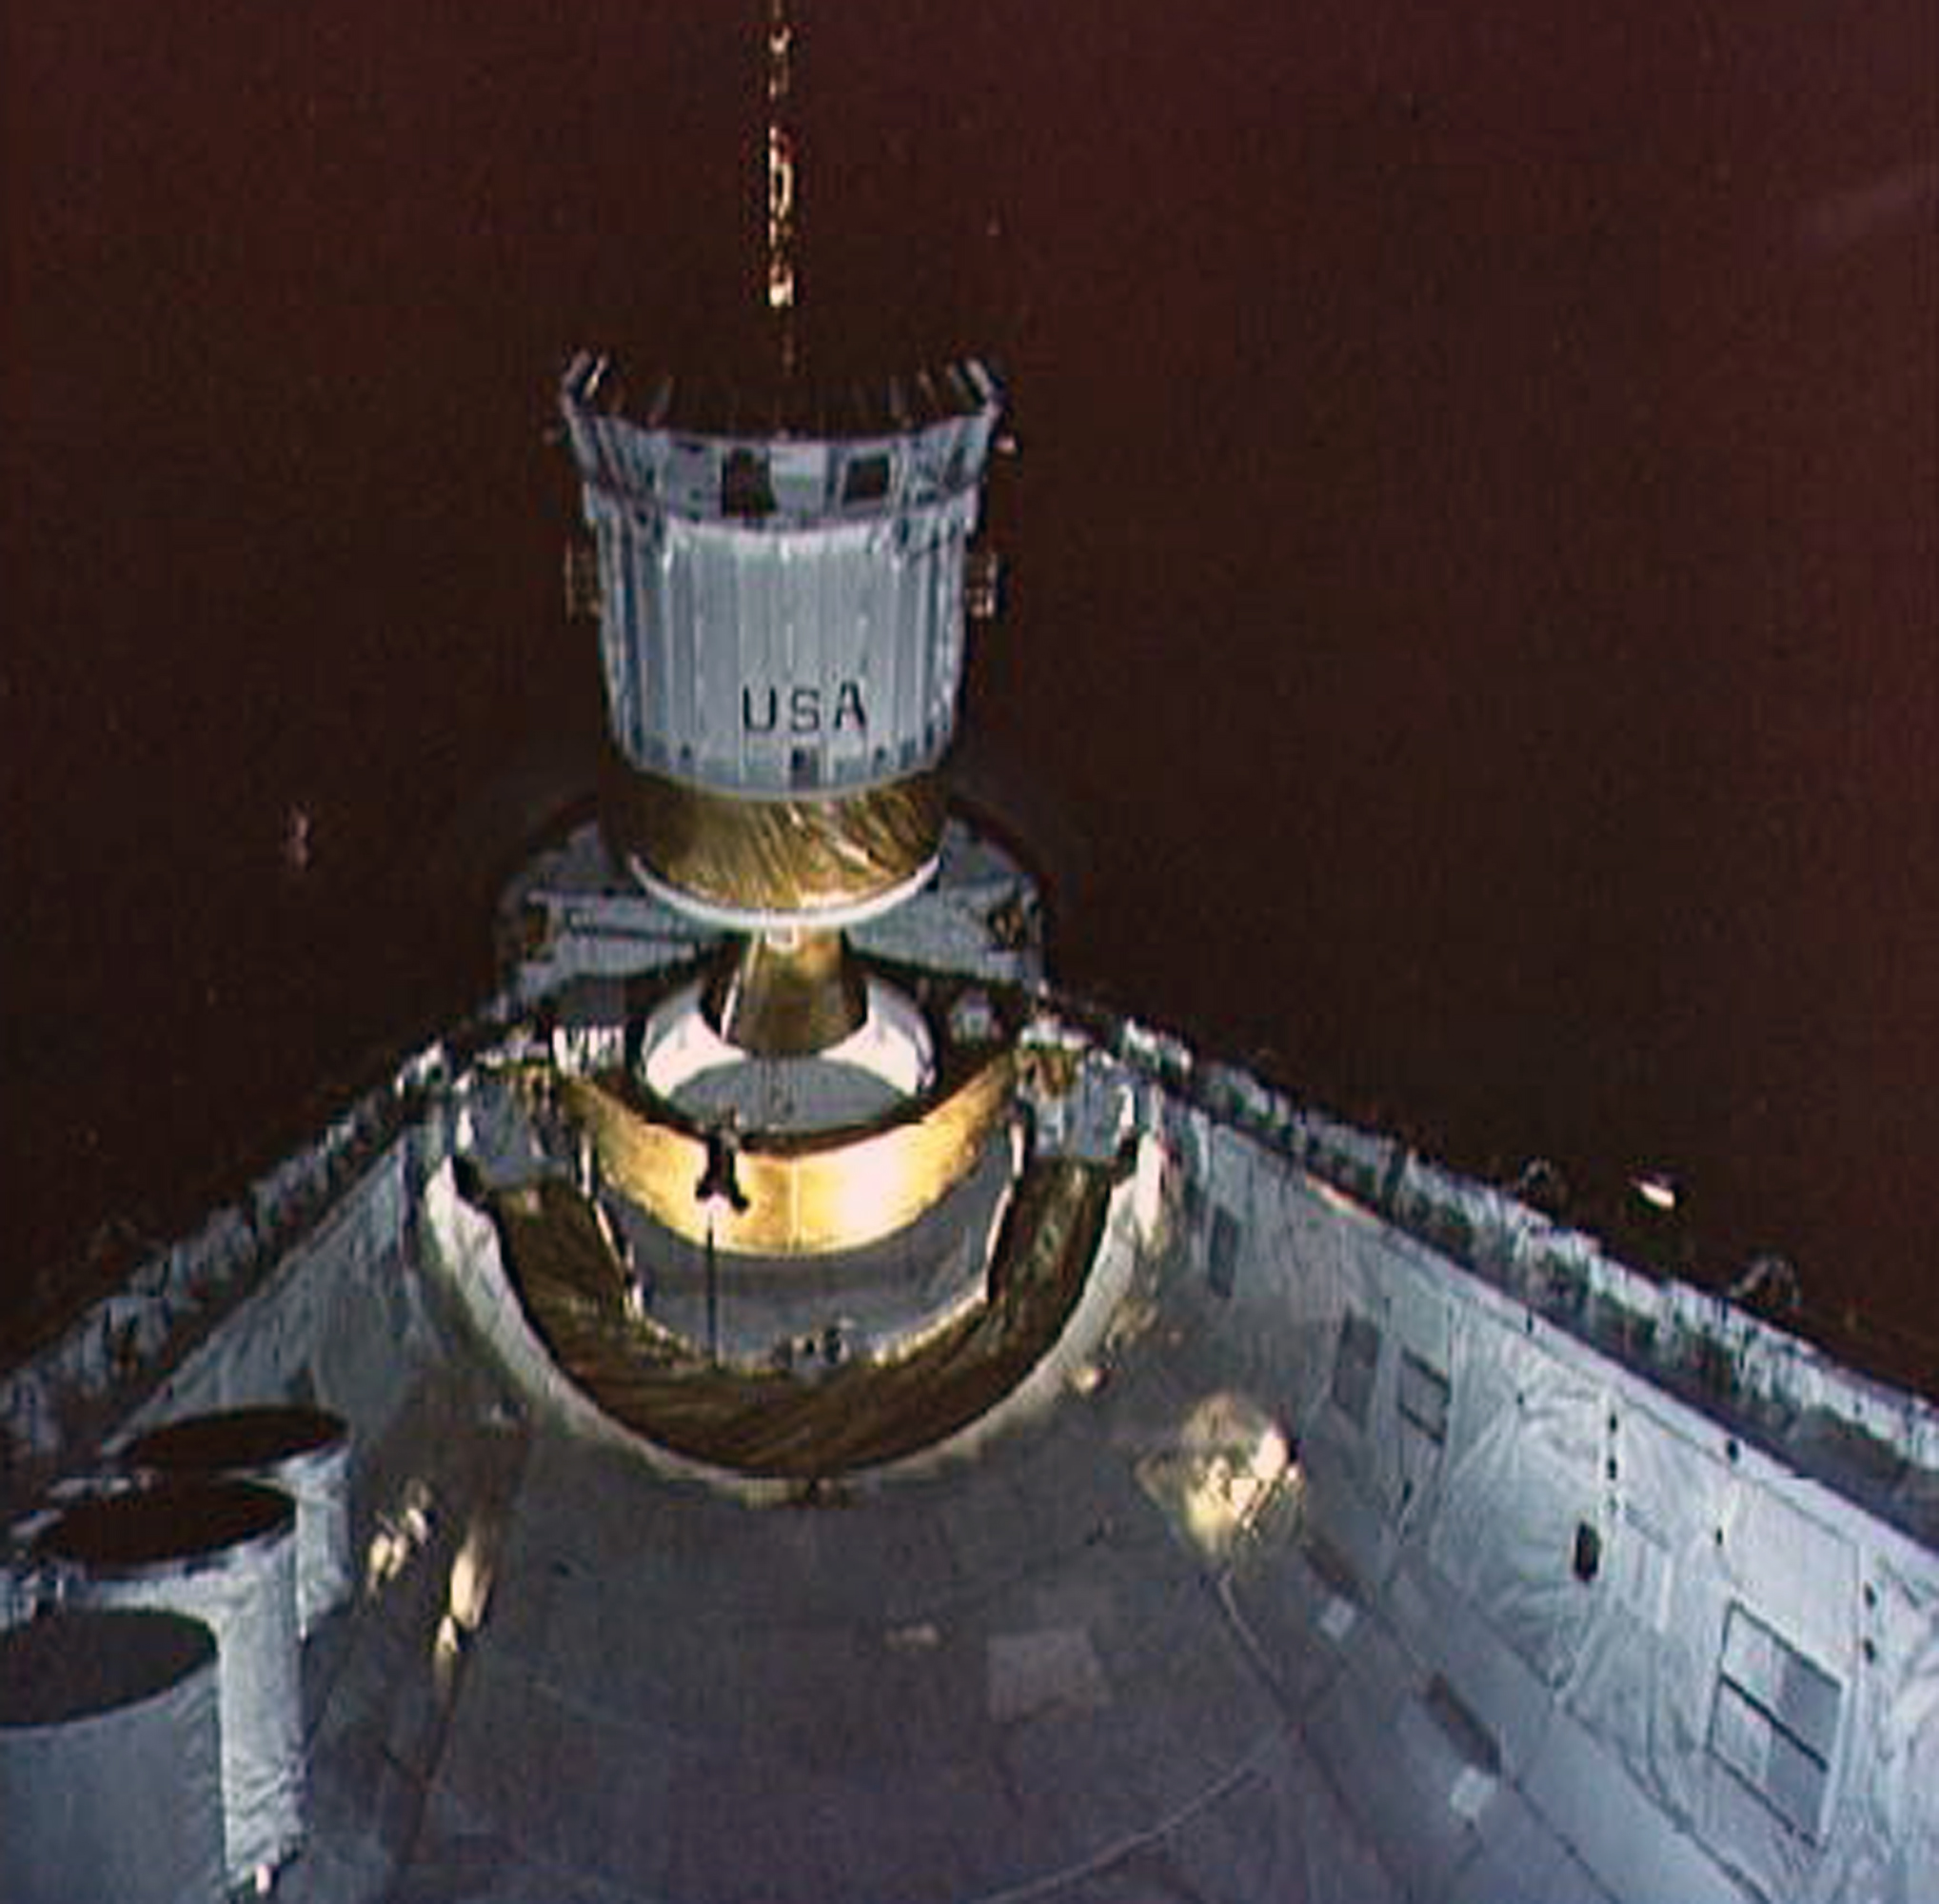 TDRS-A being deployed from Challenger's cargo bay